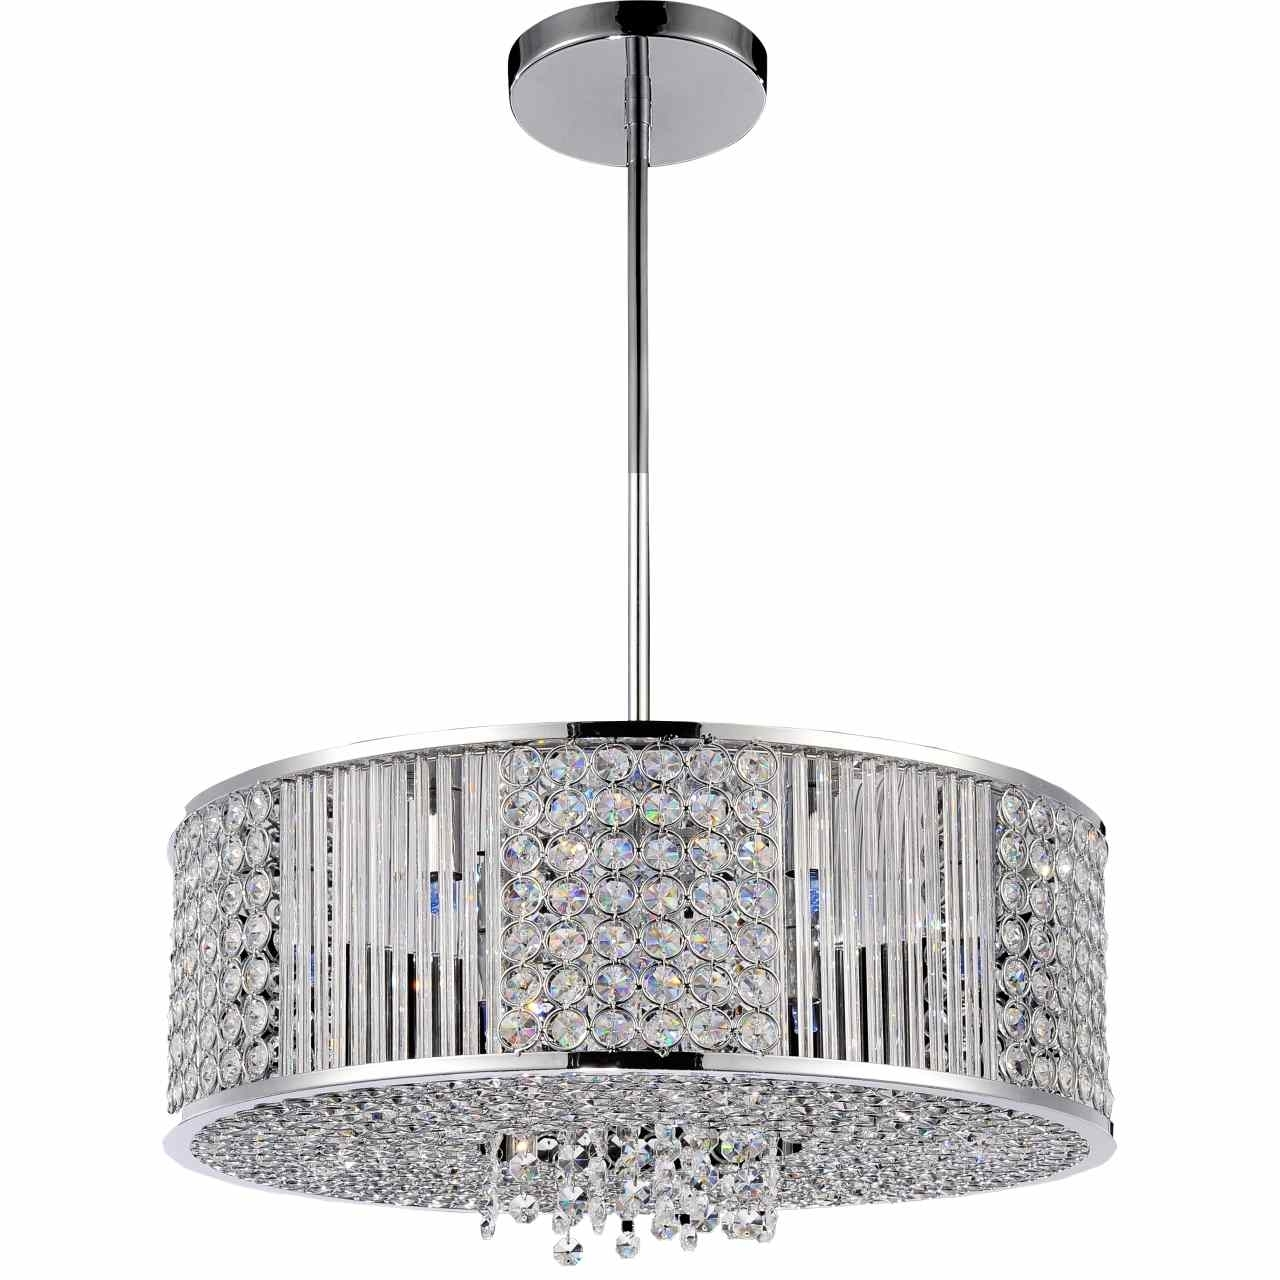 Newest Modern Pendant Chandelier Lighting With Regard To Brizzo Lighting Stores (View 15 of 20)